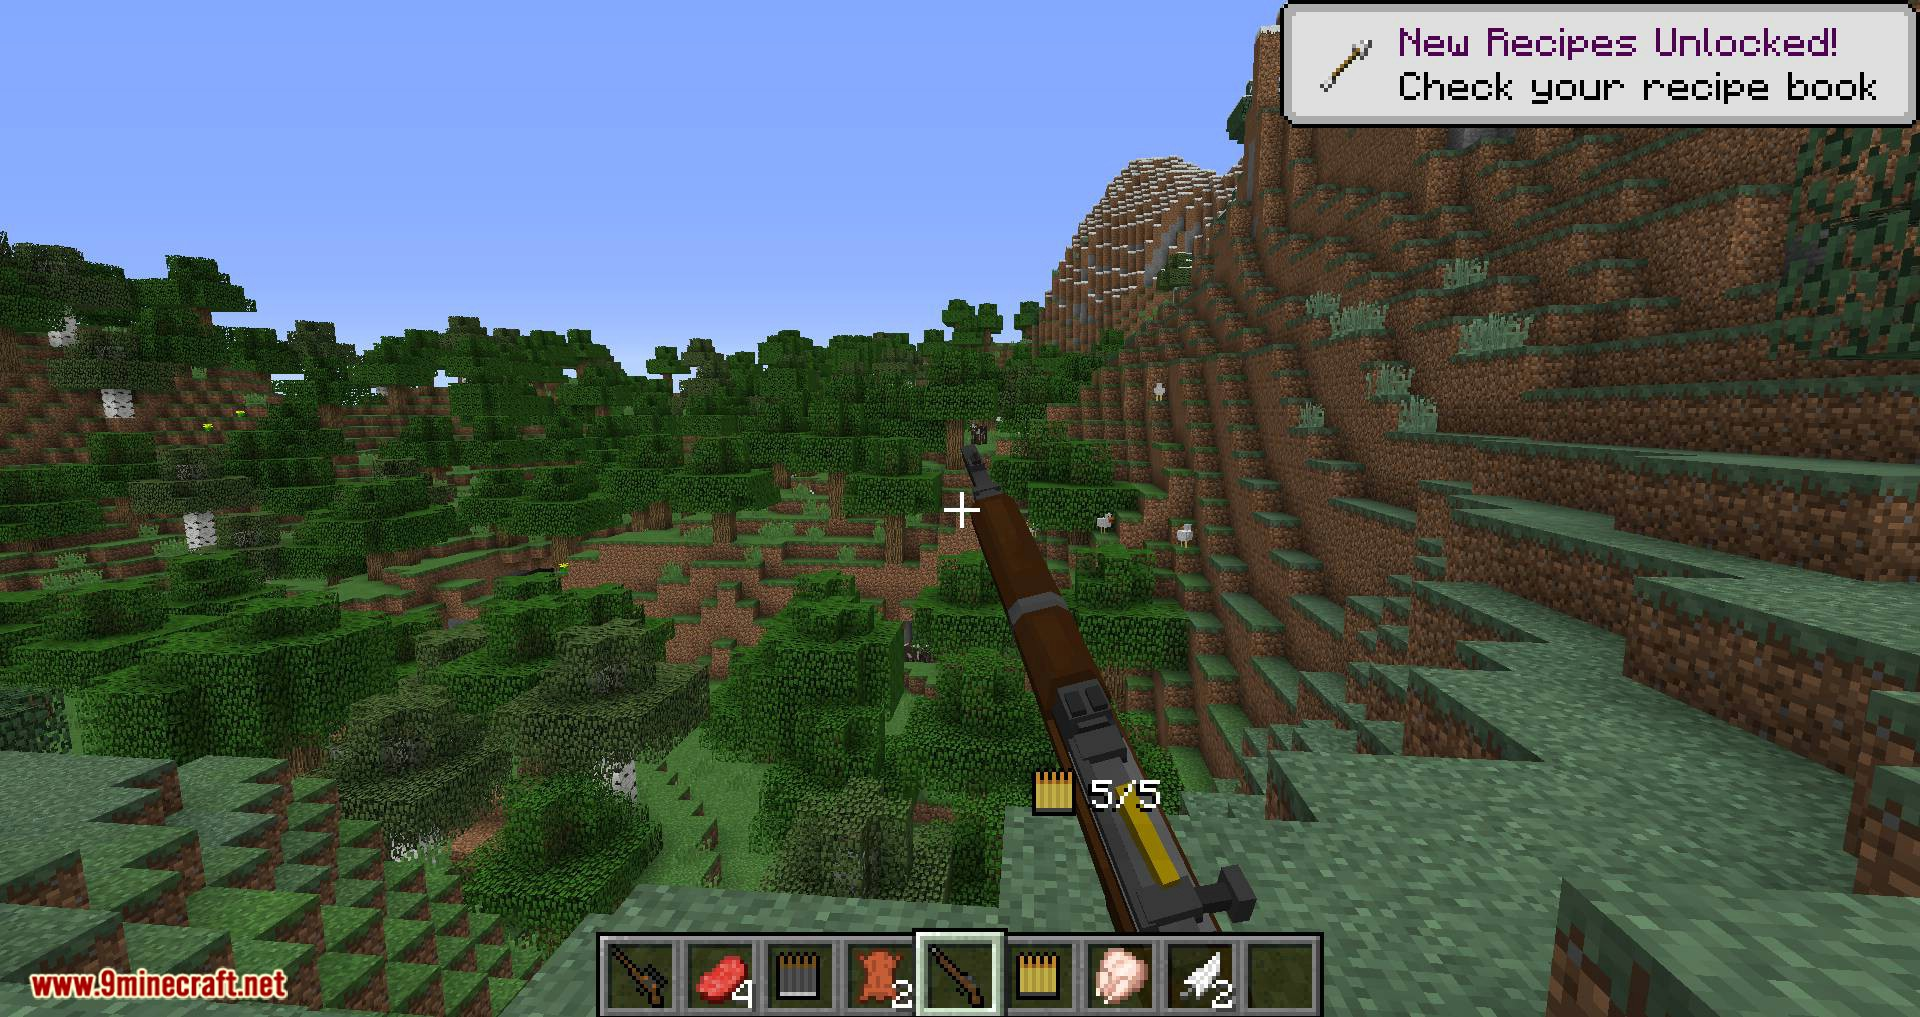 Flan_s Content Pack Call of Duty 2 Bolt-Action Rifles mod for minecraft 06